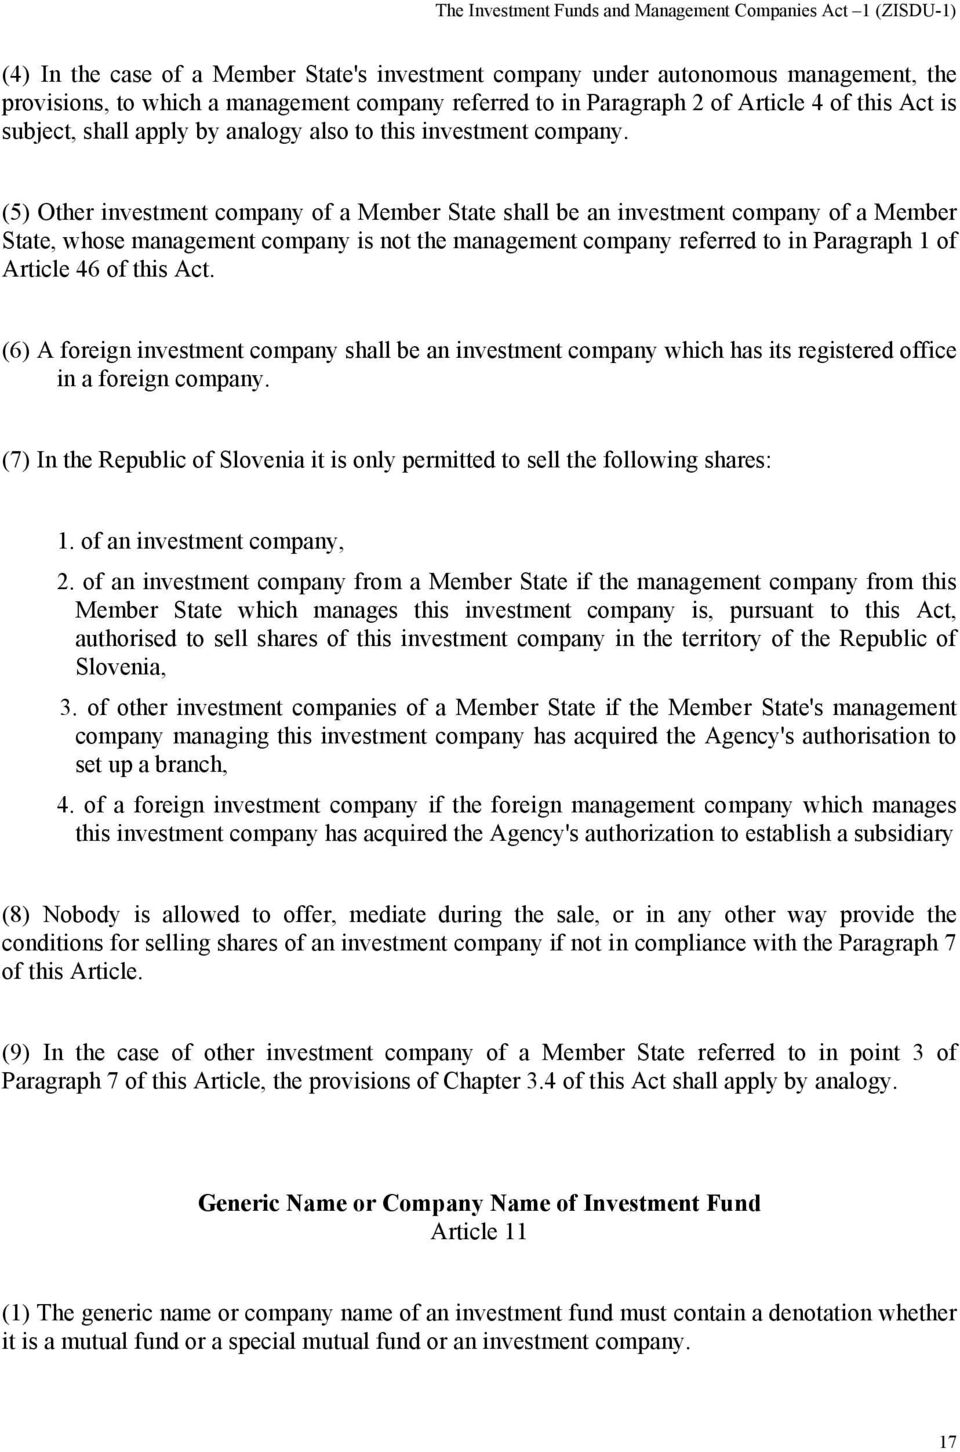 (5) Other investment company of a Member State shall be an investment company of a Member State, whose management company is not the management company referred to in Paragraph 1 of Article 46 of